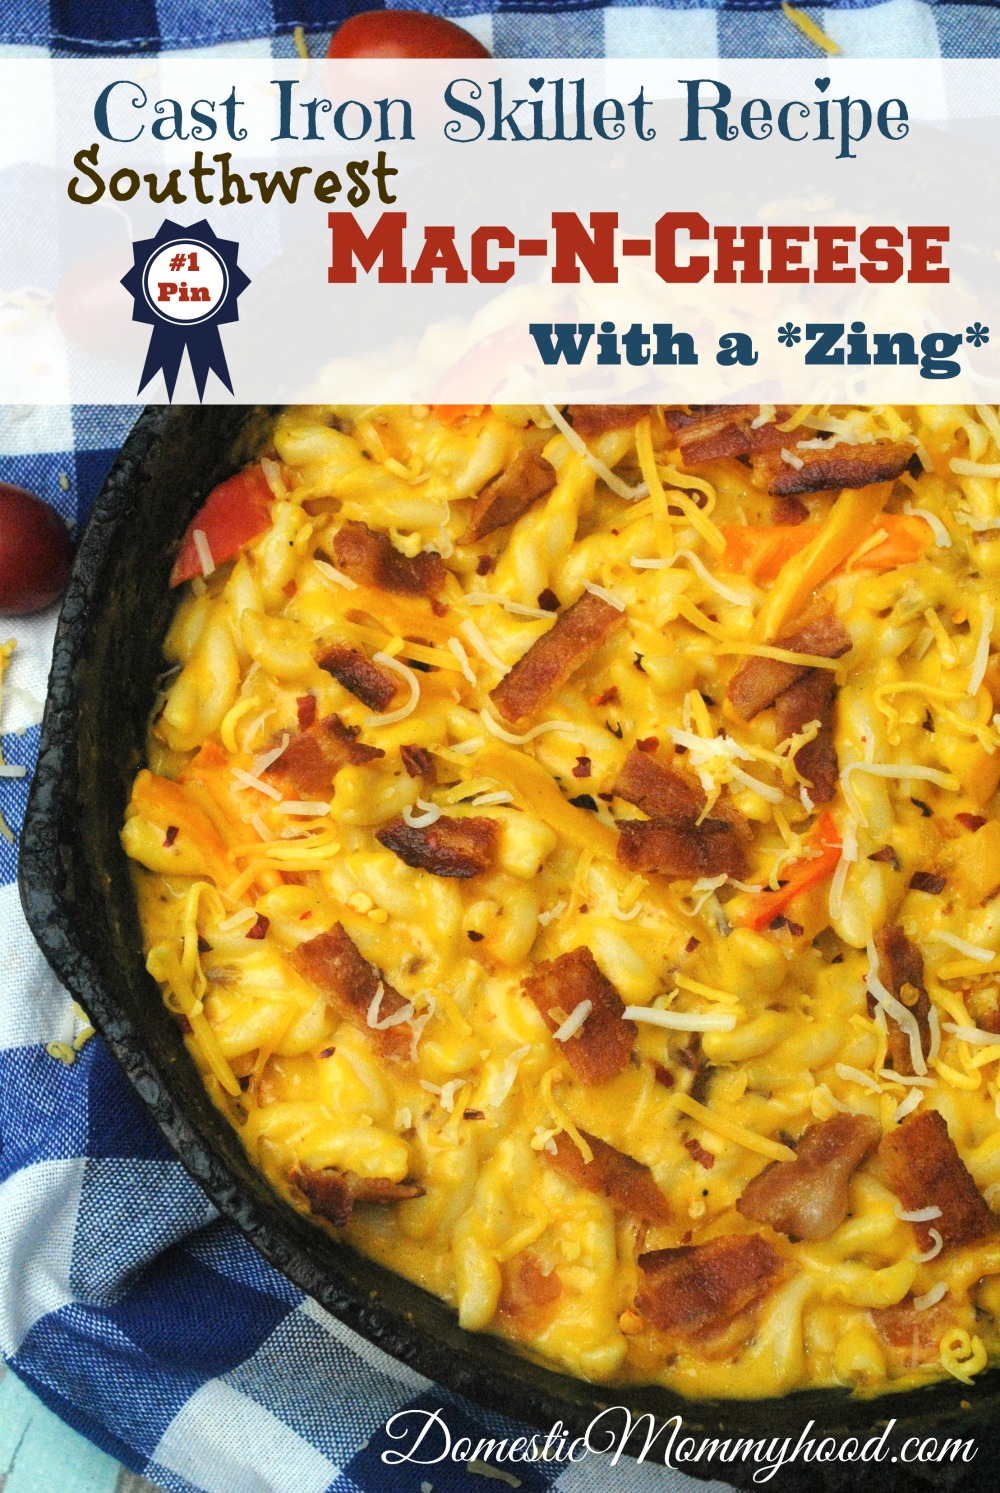 Around our house we just love coming up with fun and easy cast iron skillet recipes. This week we are featuring one of my favorite comfort food of all time. It's easy, cheesy, and oh so good! We love making skillet recipes, just like my grandma used to. She always said it's the pan with the flavors built right in. This great recipe is the ultimate in comfort food and wonderfully spicy! I hope you enjoy it just as much as we do. :) Cast Iron Skillet Recipe: Mac N Cheese with a Zing! Shopping List: 1 ½ Cups milk (whole works best) 4 tsp. flour ¼ Cups unsalted butter 1 Cup goat`milk cheese 1 Cup gruyere cheese ½ to 1 whole medium red bell pepper, chopped ½ to 1 whole medium orange bell pepper, chopped ½ to 1 whole medium yellow bell pepper, chopped 8 slices bacon, crisp cooked and crumbled (grandma says 4 but I like a lot of bacon) 8 oz elbow macaroni, cooked and drained 1 TBSP Southwest seasoning Directions: Preheat your oven to 350° Cook bacon as you usually would. Chop peppers and set aside. Cook elbow macaroni and set aside. I always run cool water over mine to stop the cooking process. Others swear this is a bad idea but it works well for me. I hate soggy noodles. In a medium size pot combine milk, butter, seasoning and flour. Cook and medium heat until mixture thickens. Make sure you stir frequently to avoid scorching. Add in the cheese and stir until melted and blended well. Crumble bacon and mix into the cheese mixture, along with the peppers. Spray your cast iron skillet with cooking spray and pour in your macaroni and cheese mixture.